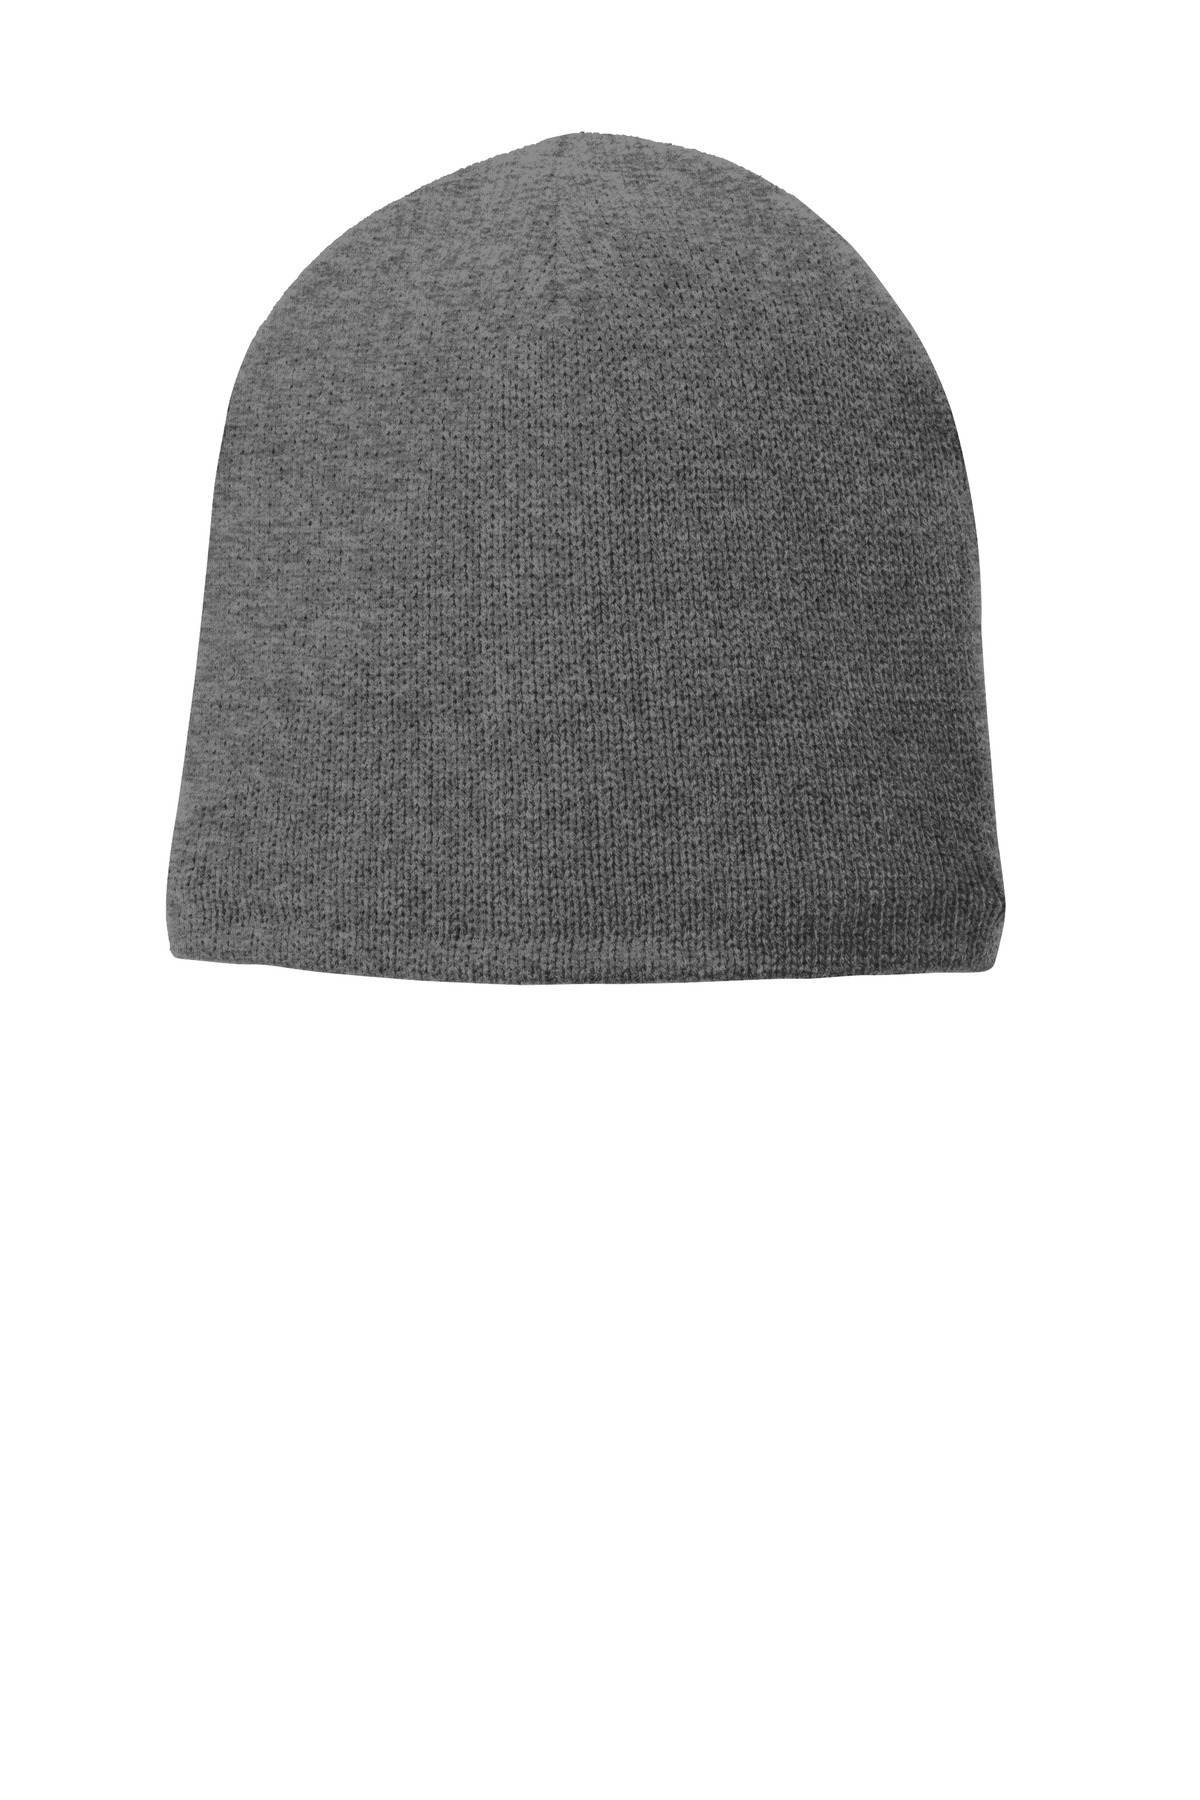 Port & Company ®  Fleece-Lined Beanie Cap. CP91L - Athletic Oxford